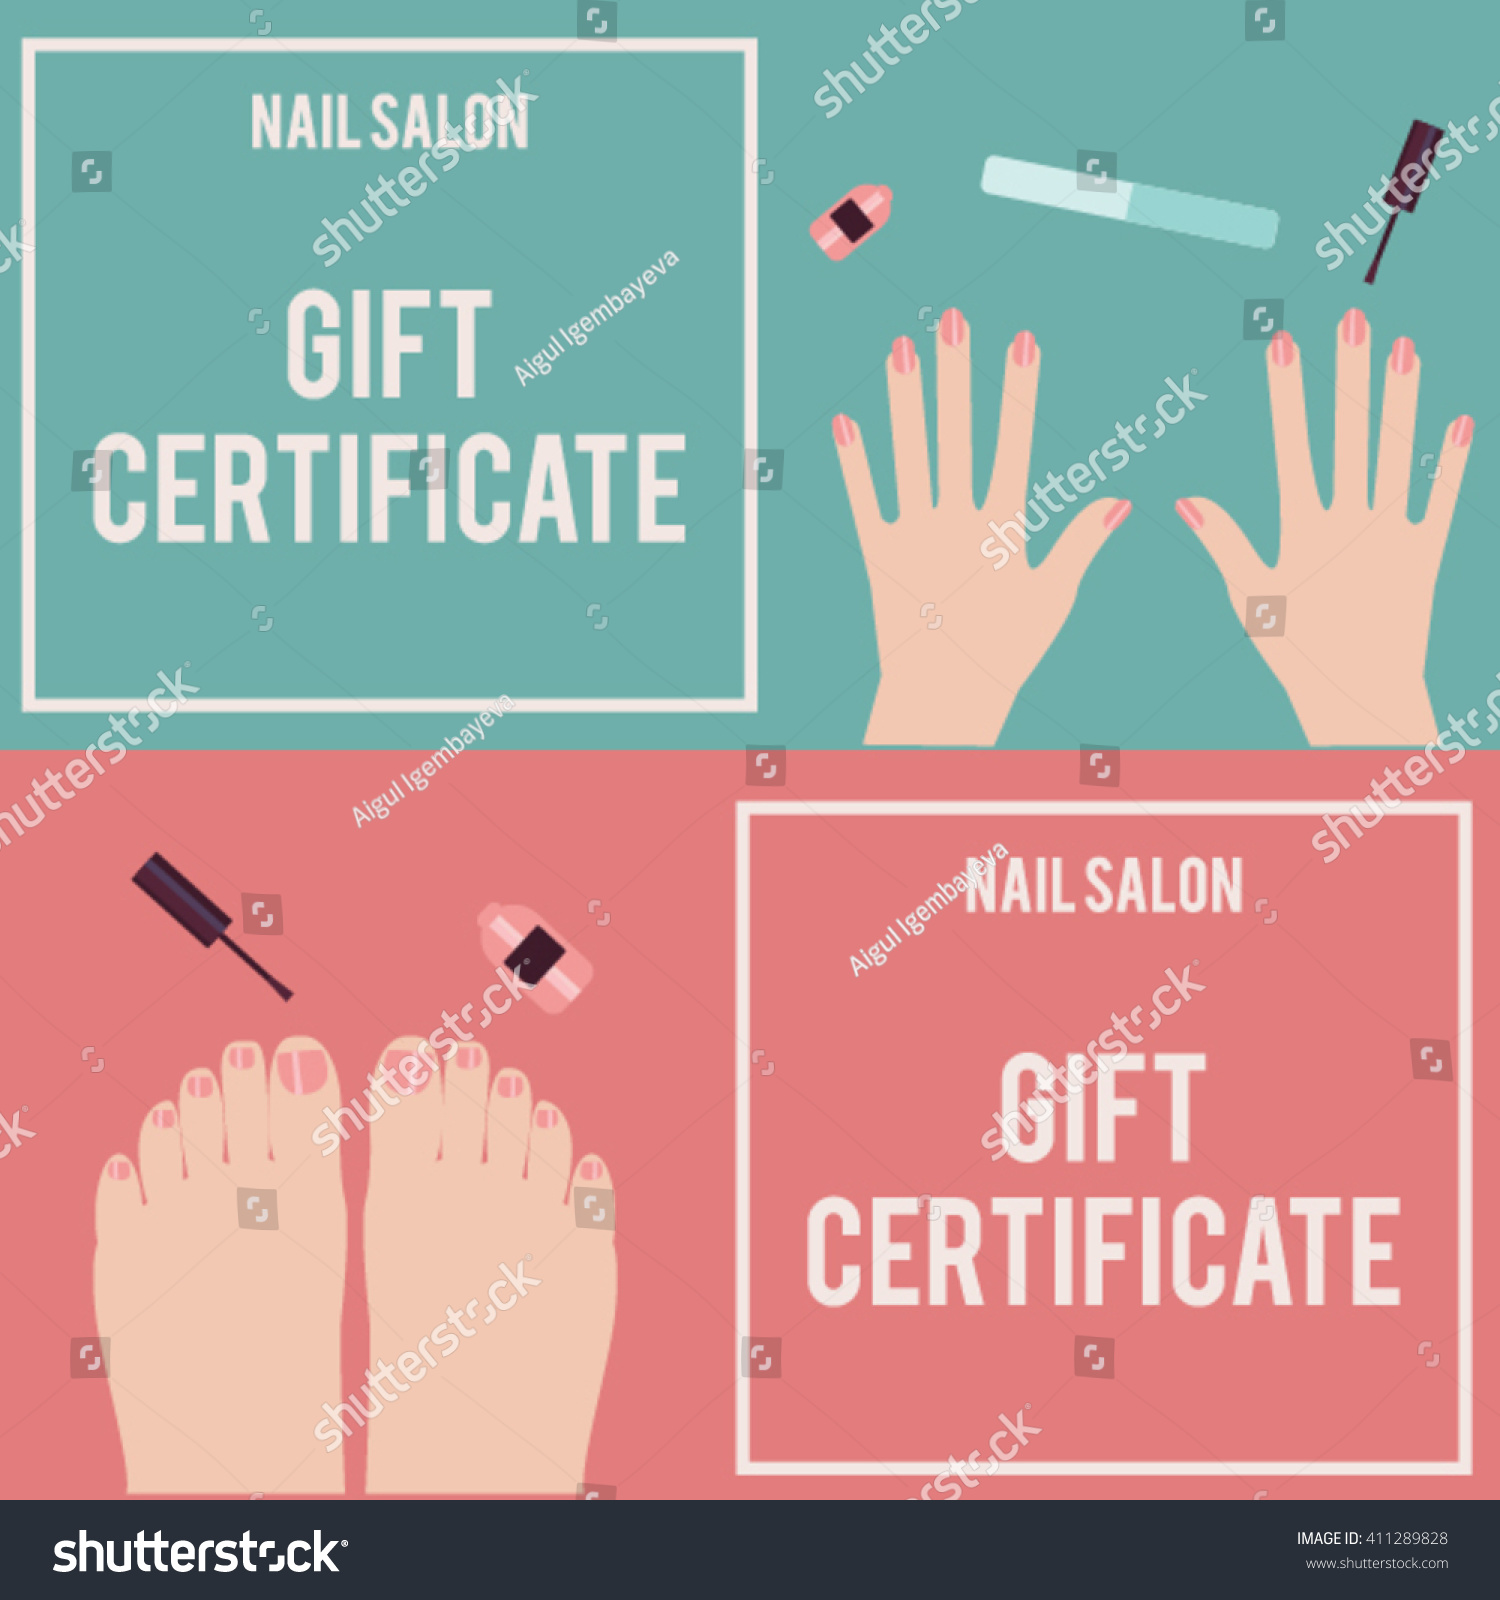 Nail Salon Gift Certificate Gift Certificate Stock Vector Royalty